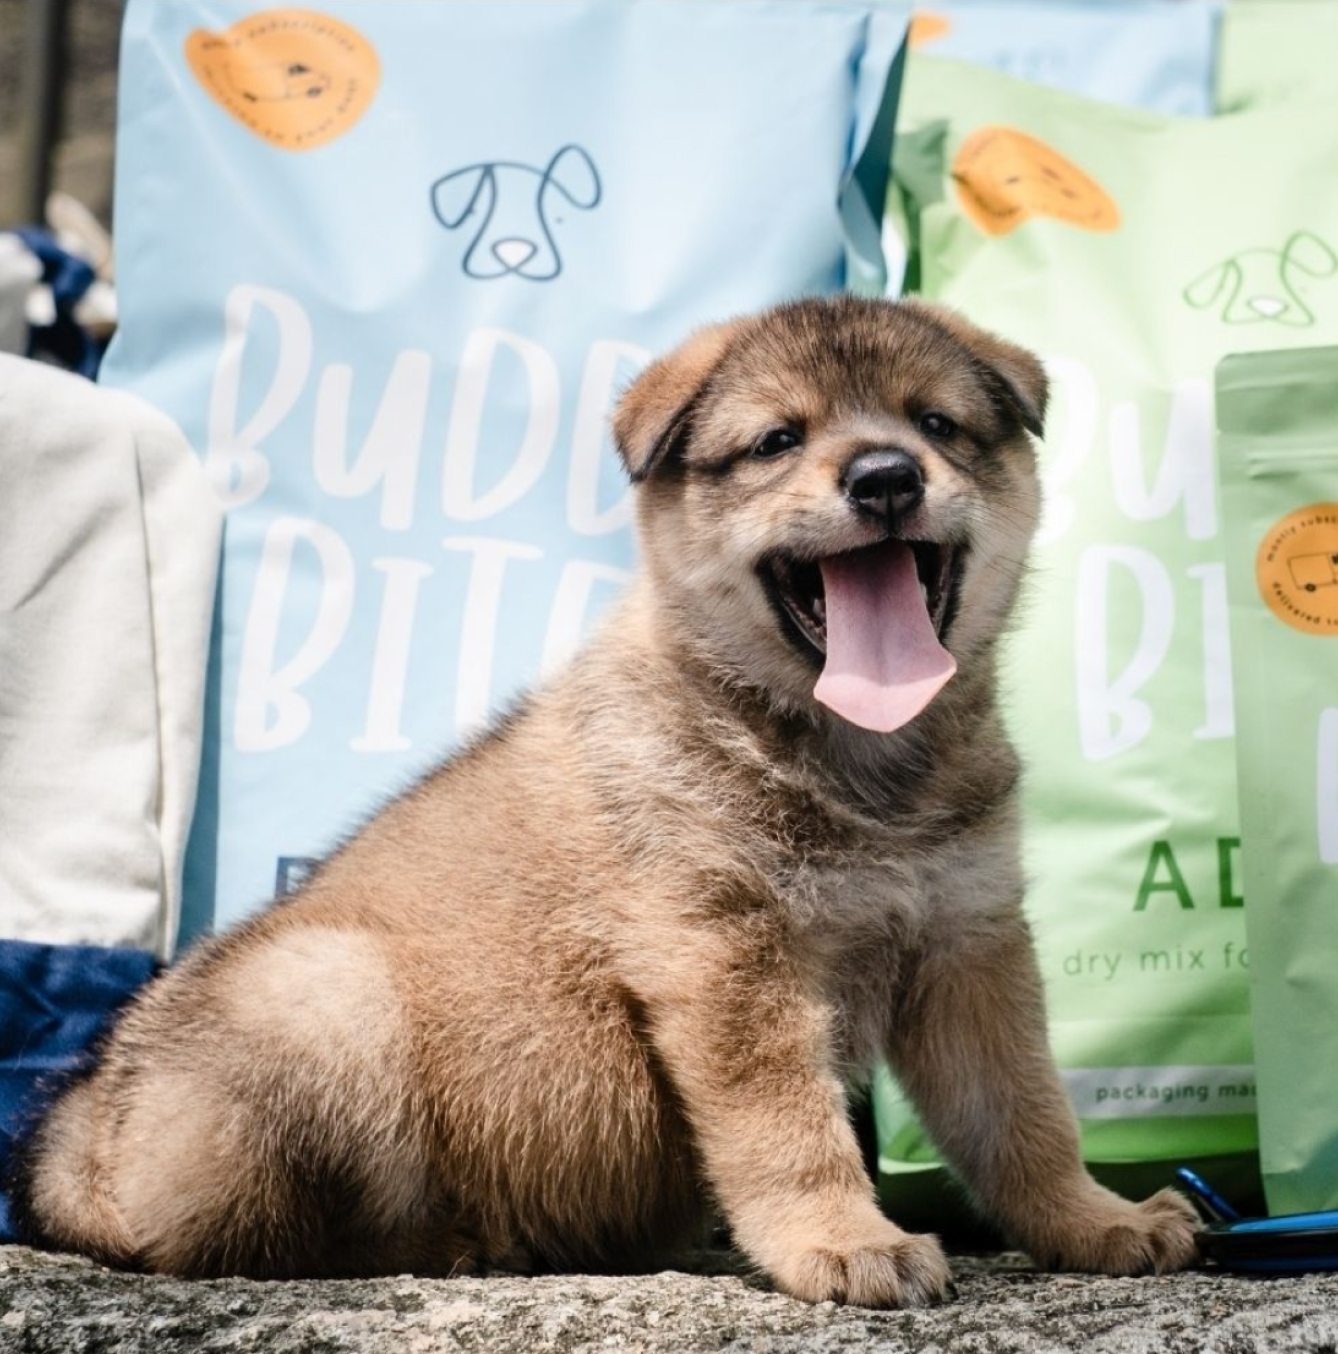 An adorable puppy Husky with its tongue out. Large bags of Buddy Bites dog food are behind it. The dog is very cute.